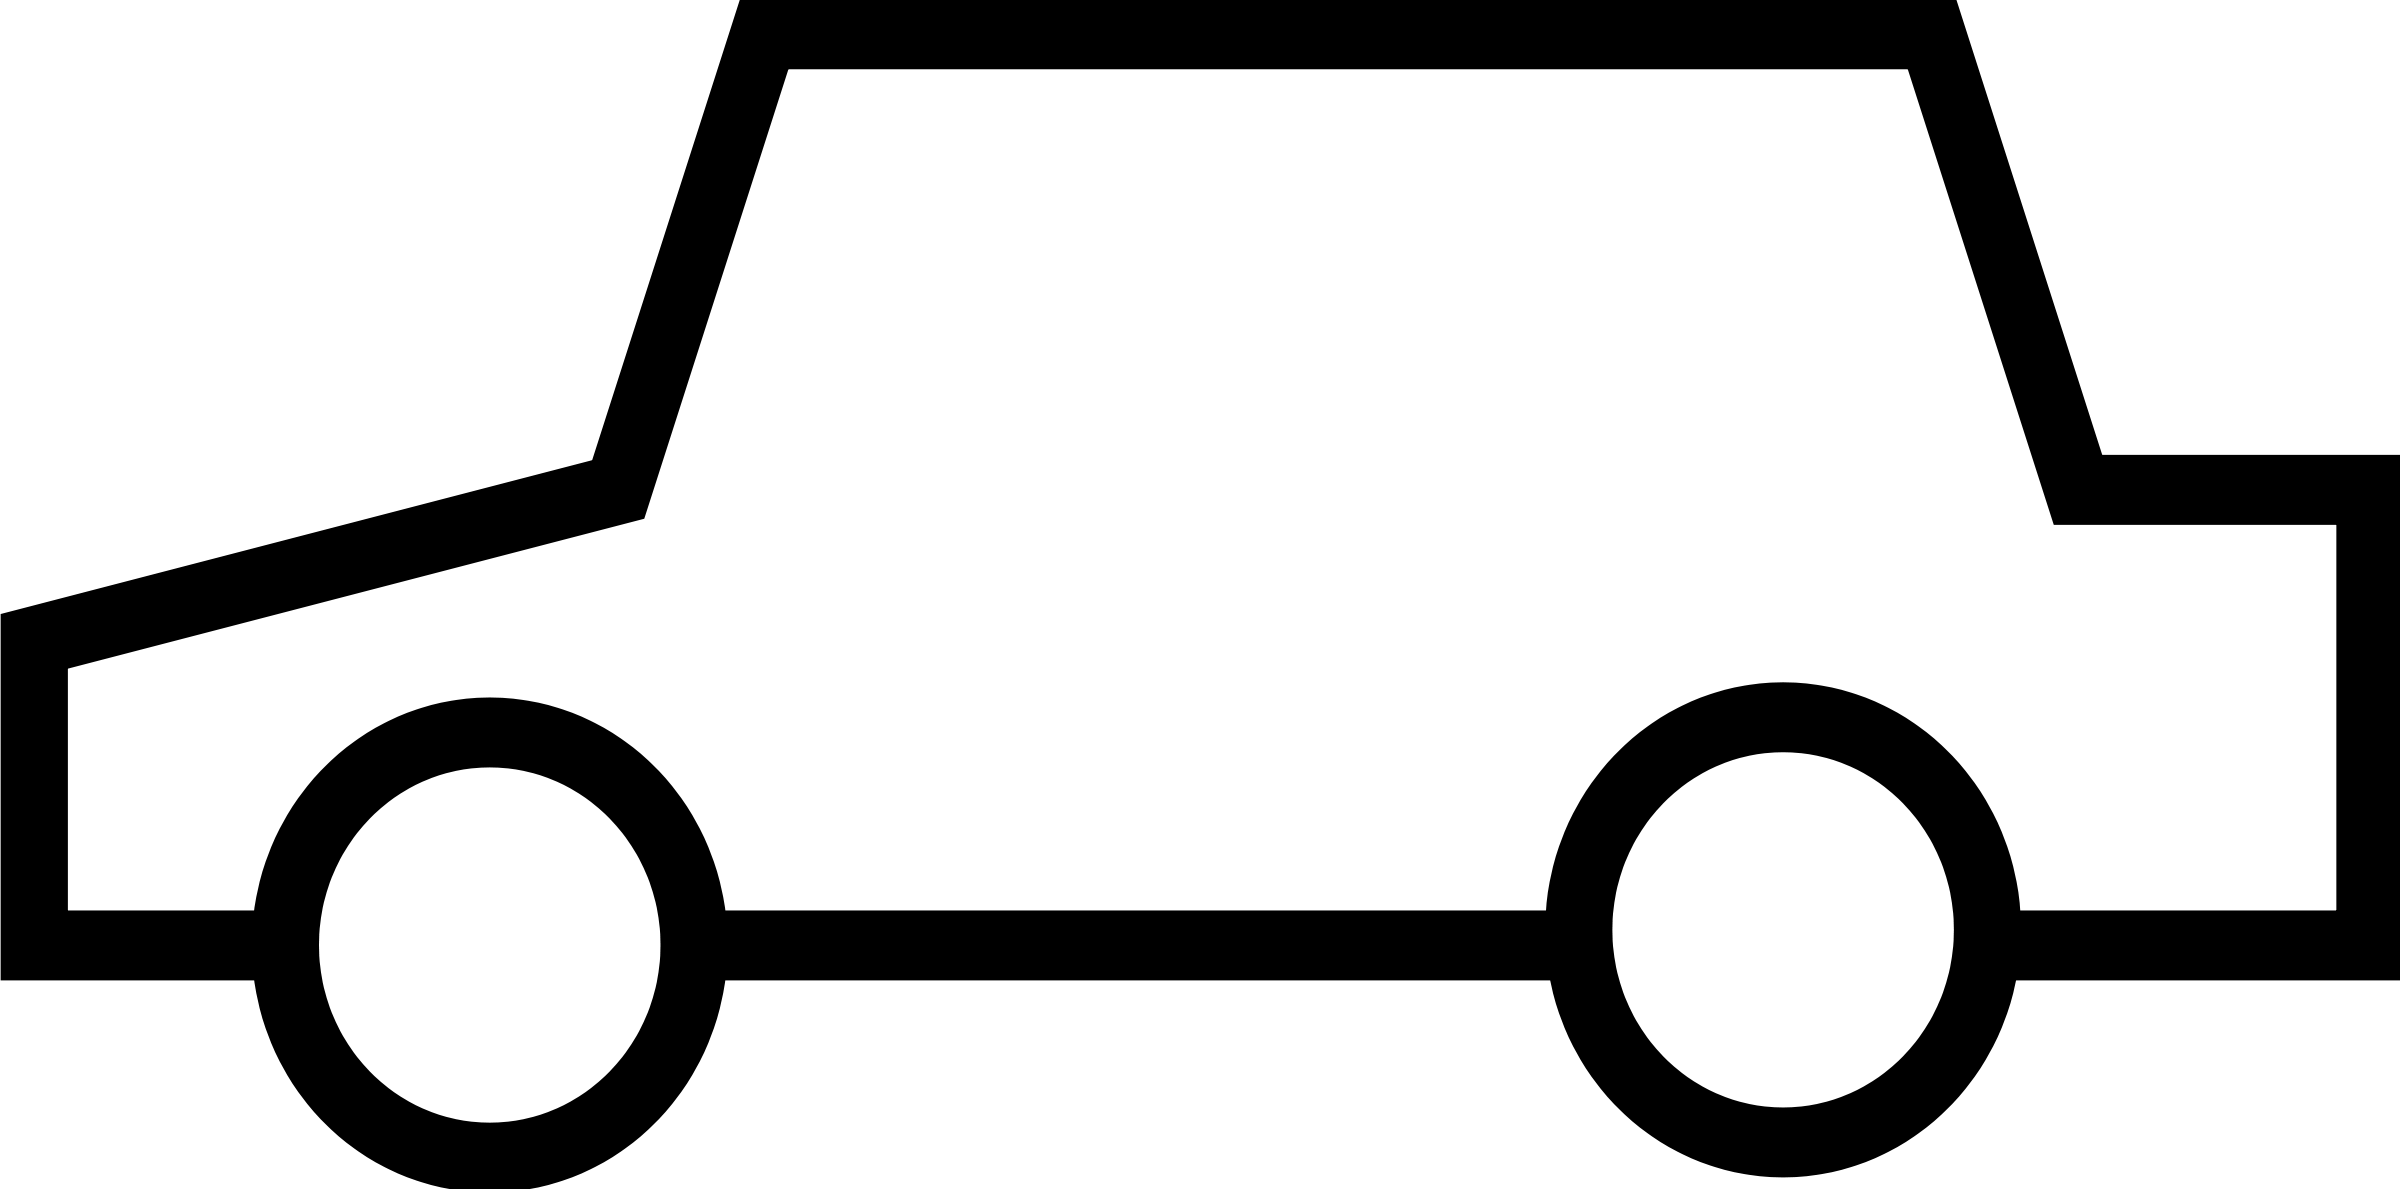 2400x1189 Image Of 39 Car Clipart Black And White Images